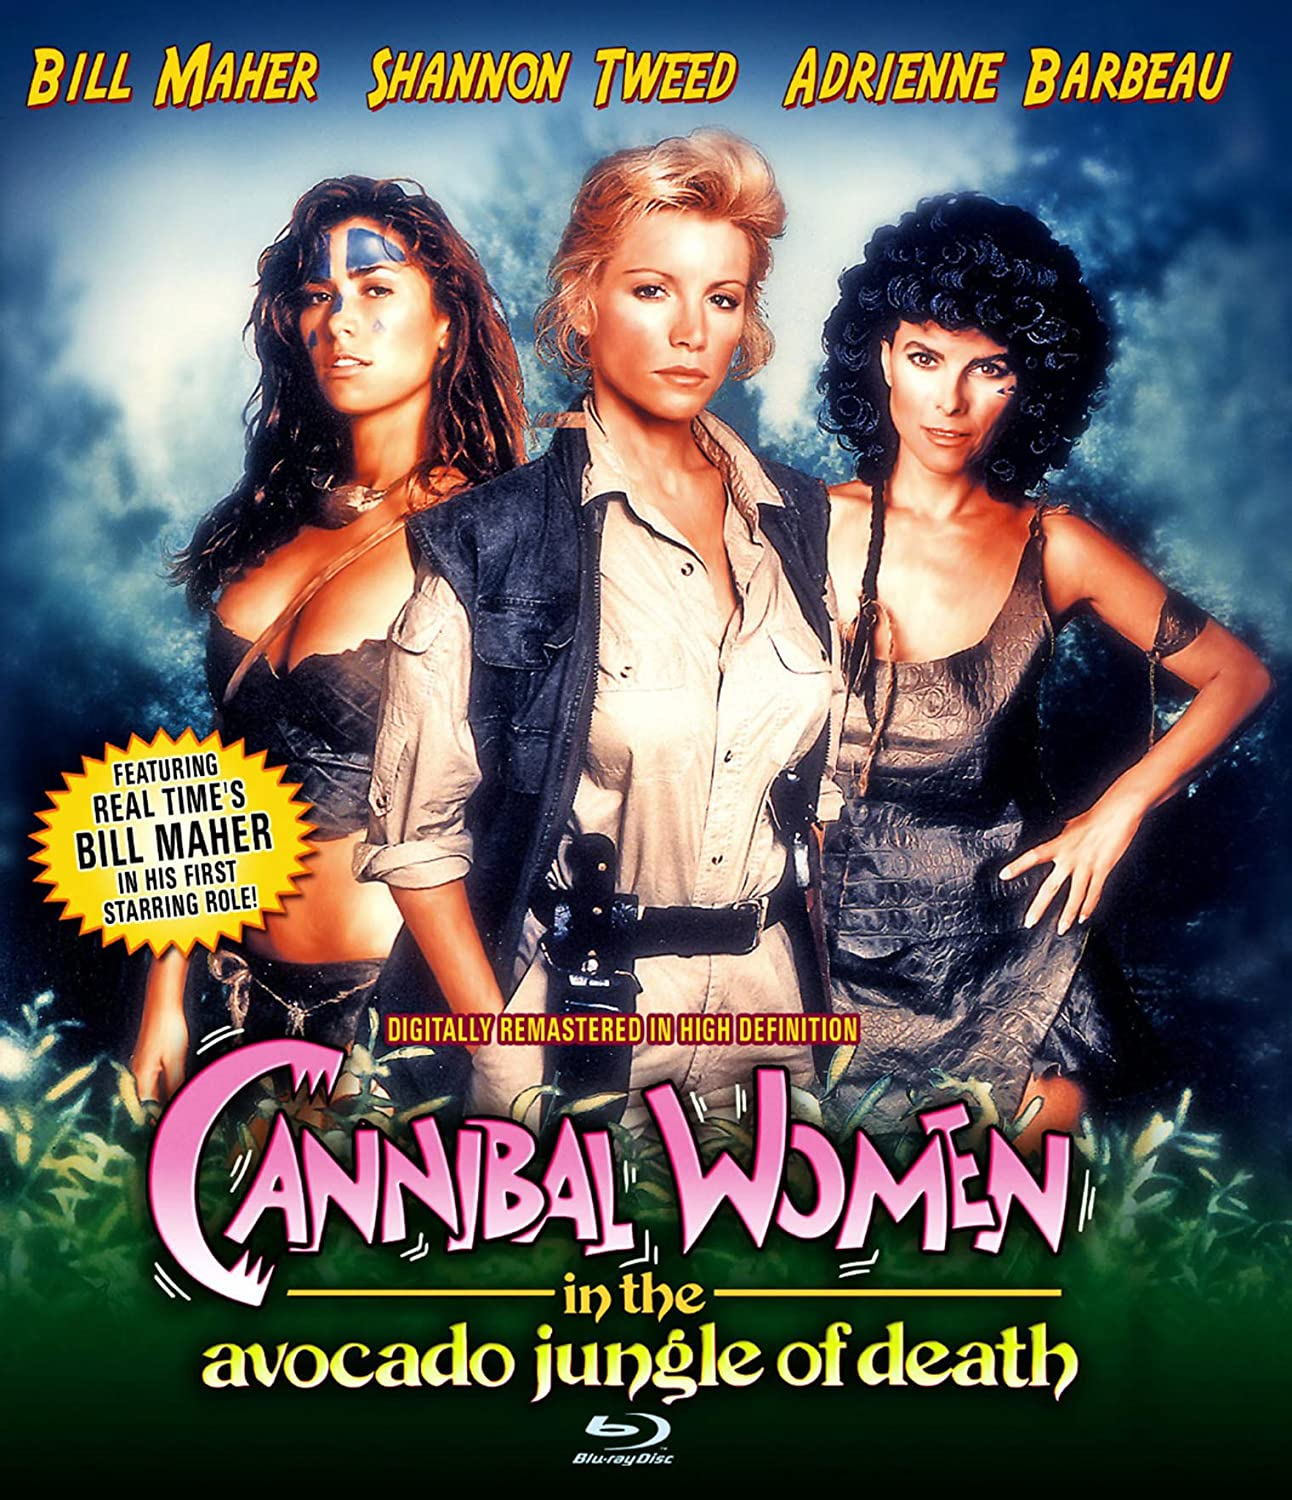 Image result for cannibal women in the avocado jungle of death